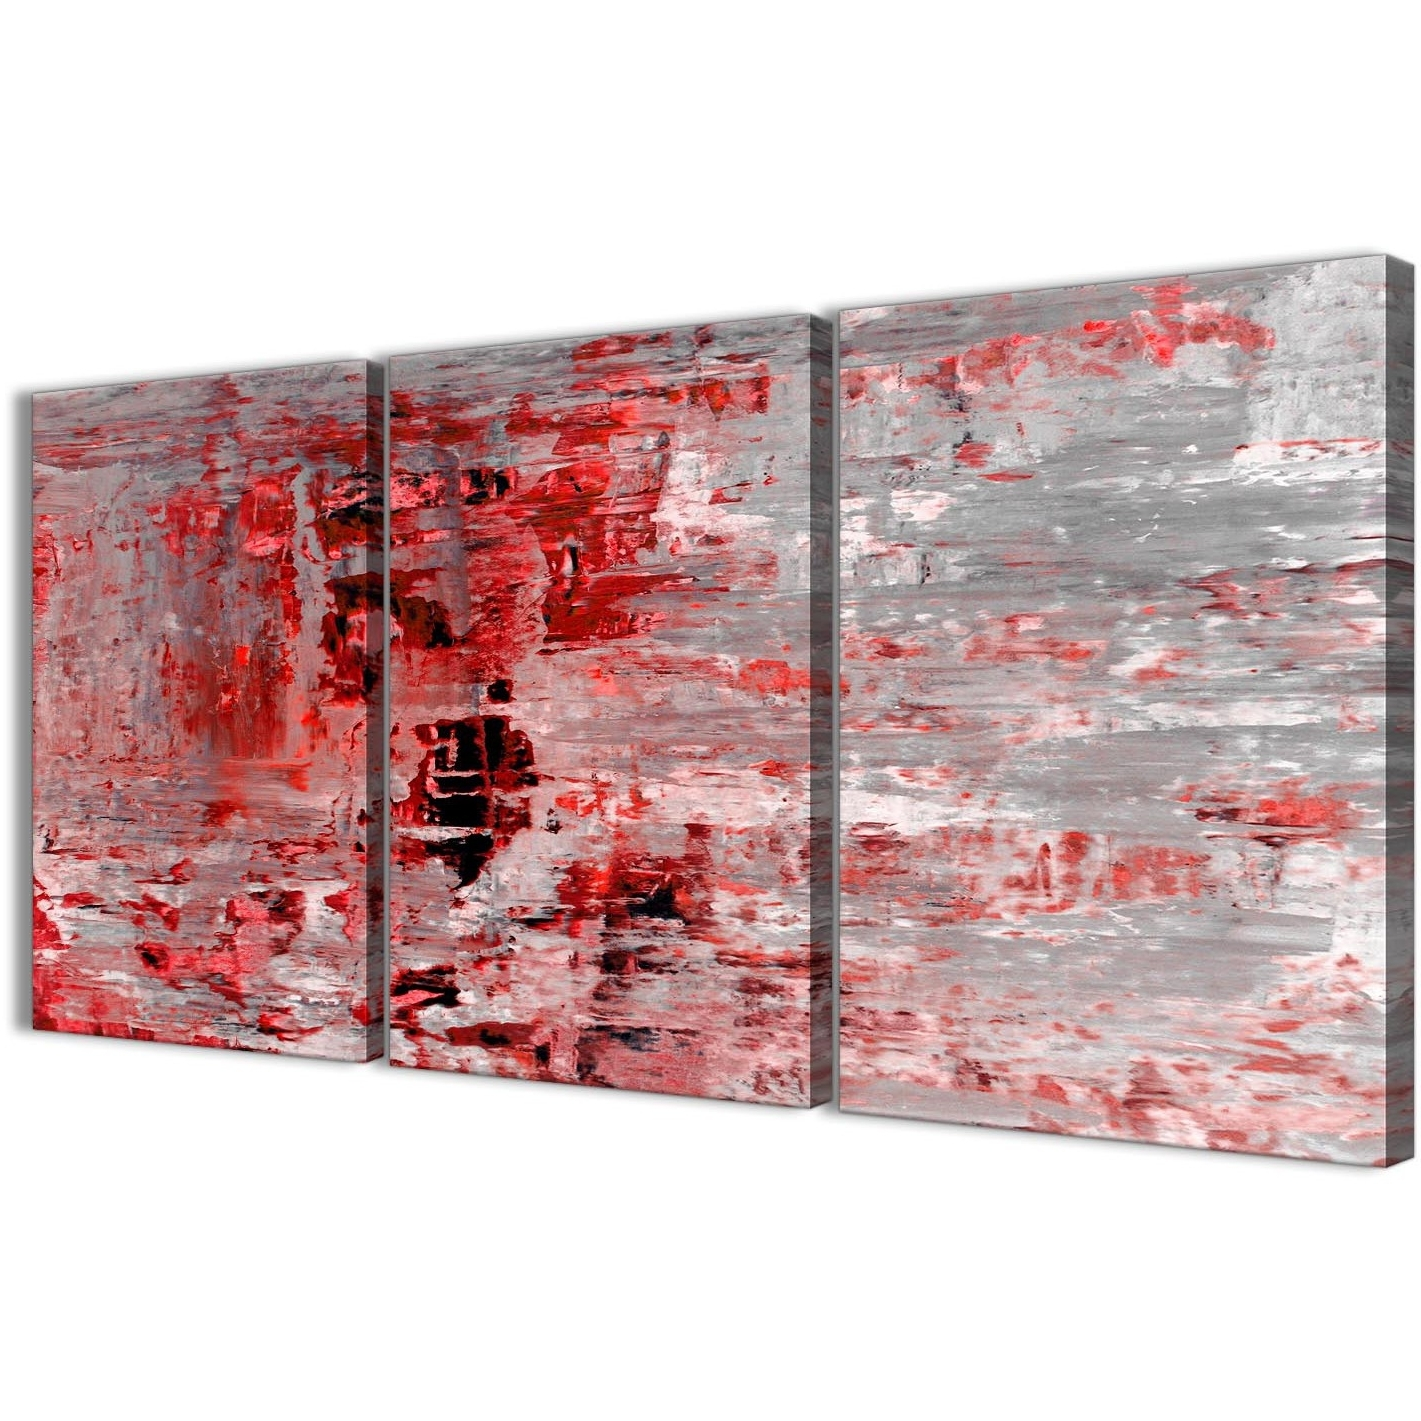 Preferred 3 Piece Red Grey Painting Living Room Canvas Wall Art Decor For Kitchen Canvas Wall Art (View 5 of 15)